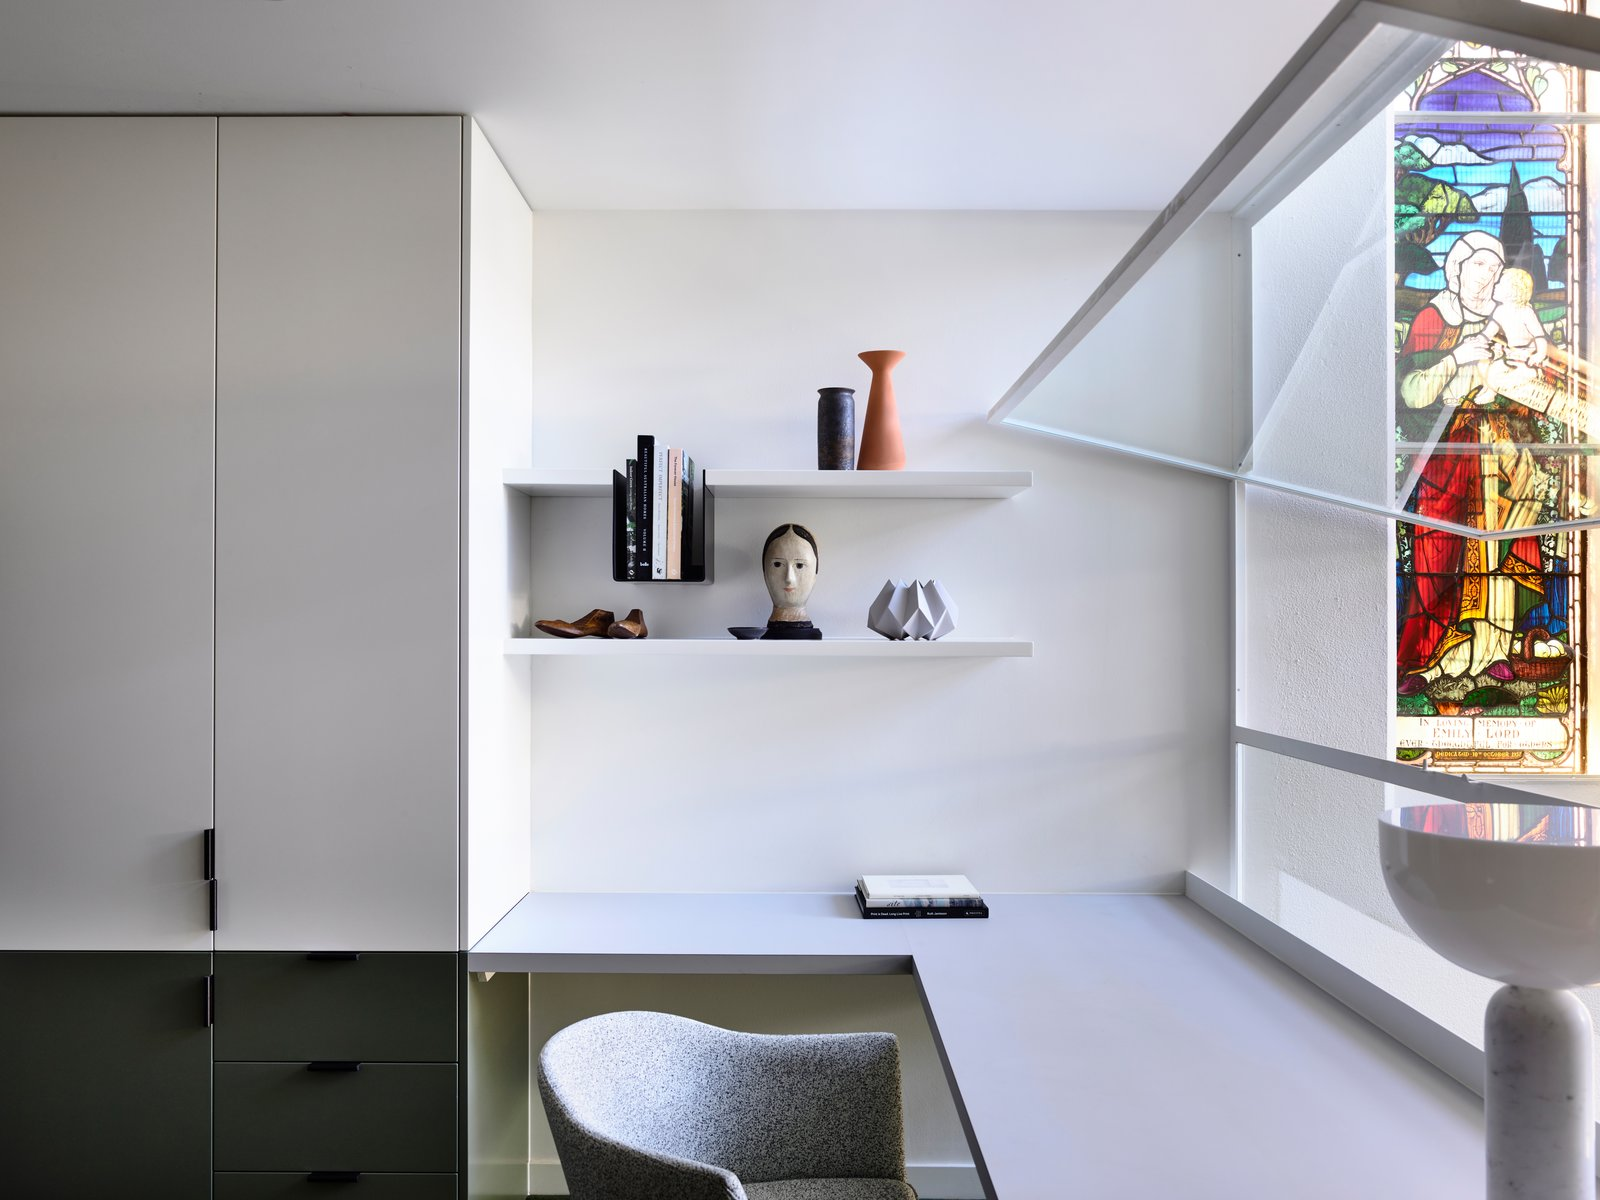 Office, Storage, Desk, Study Room Type, Shelves, Chair, and Lamps Introducing  Photos from Before & After: A 1930s Church in Melbourne Gets a Dramatic Conversion